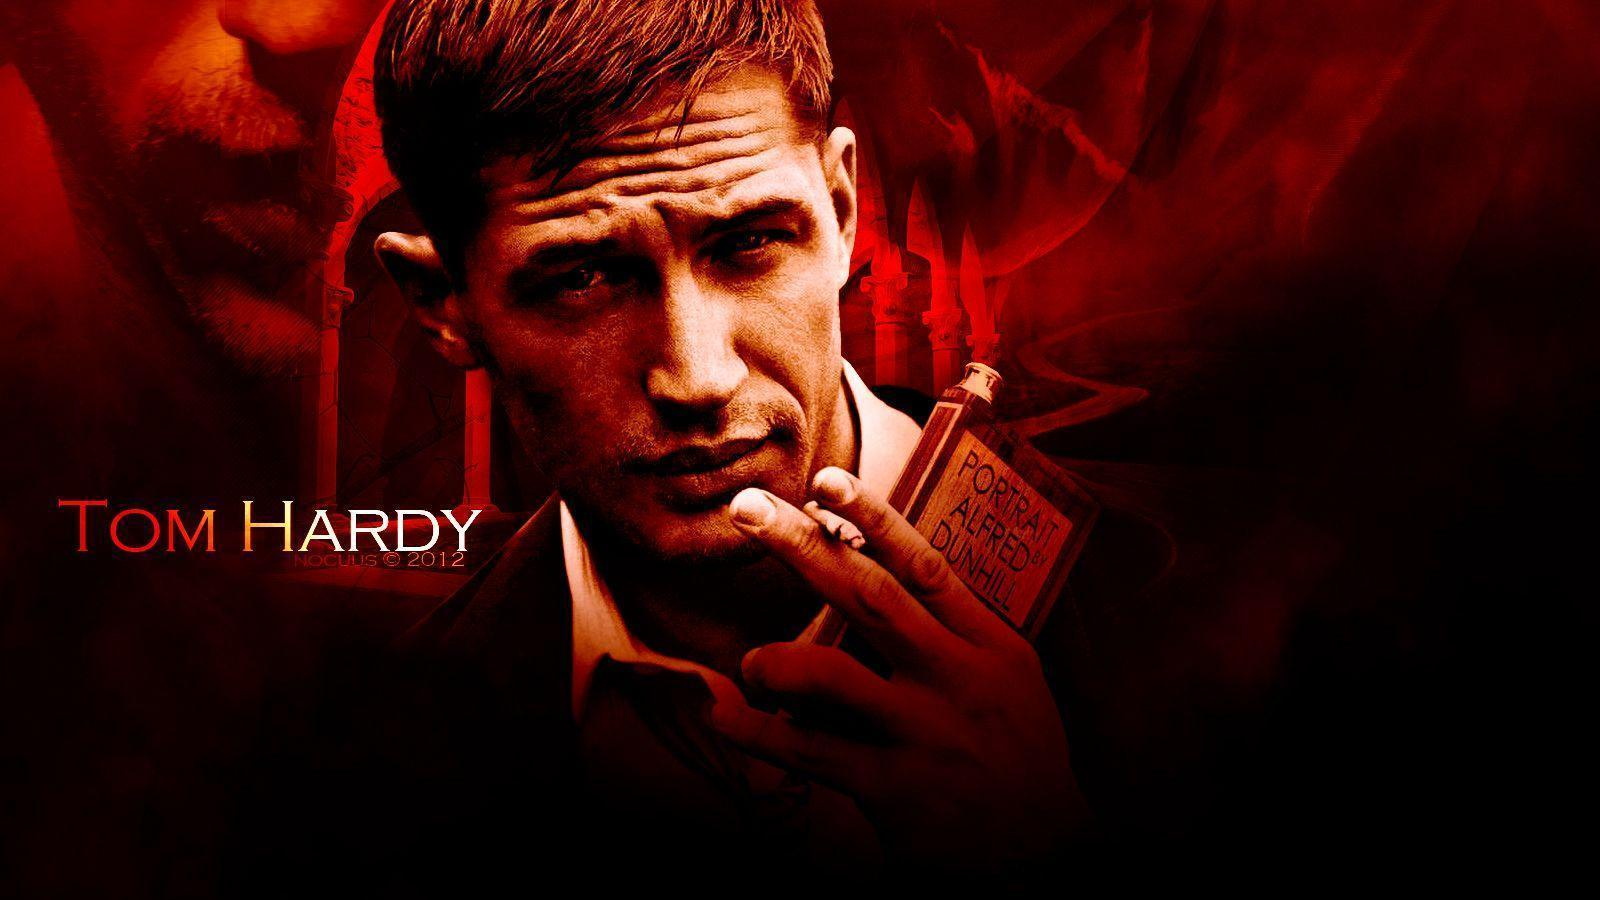 Tom Hardy Wallpapers Theme With 10 Backgrounds